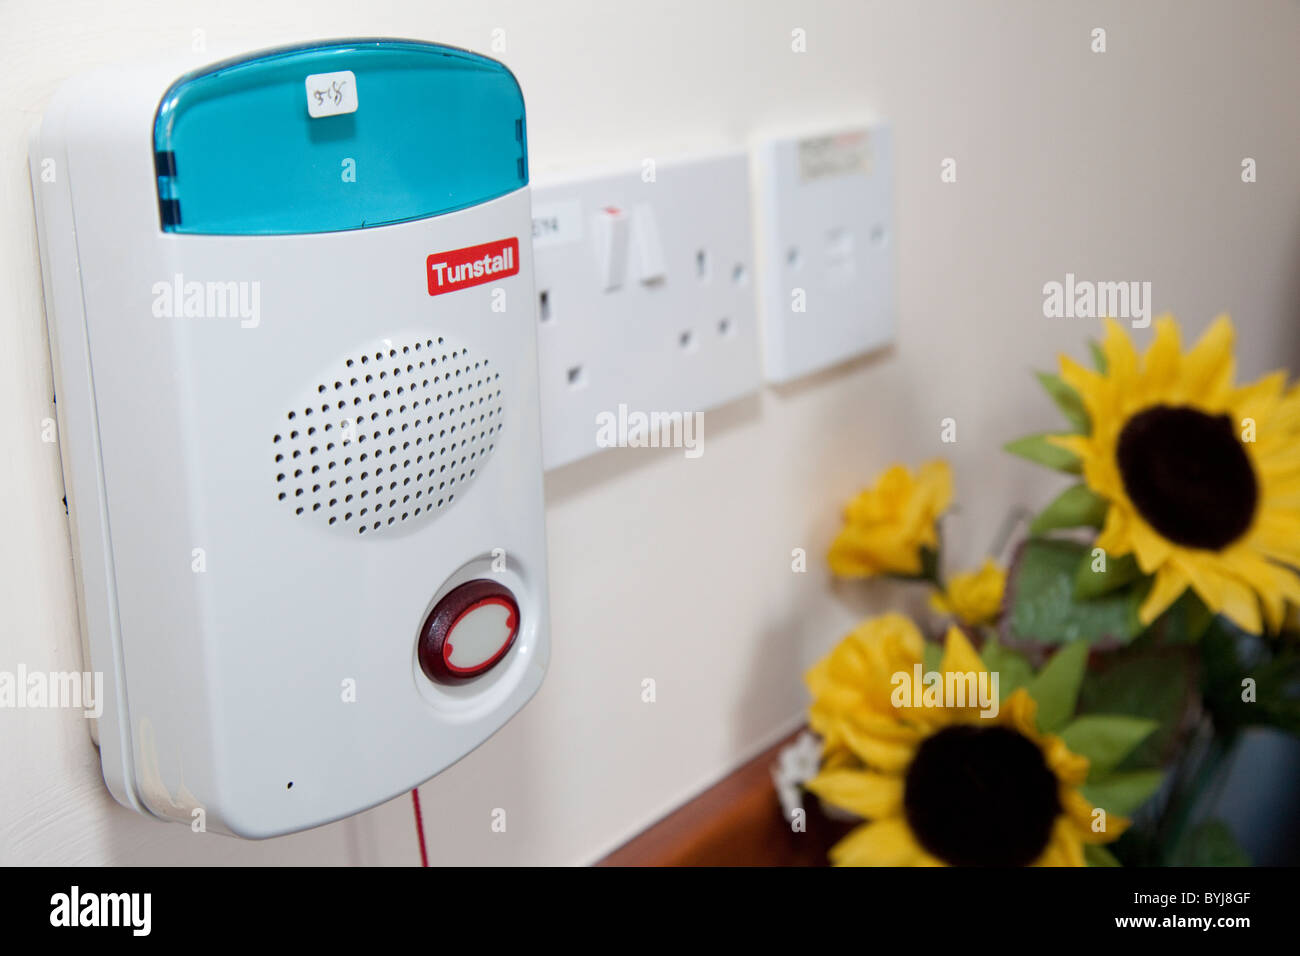 A Tunstall Emergency Call Alarm Intercom Installed At An